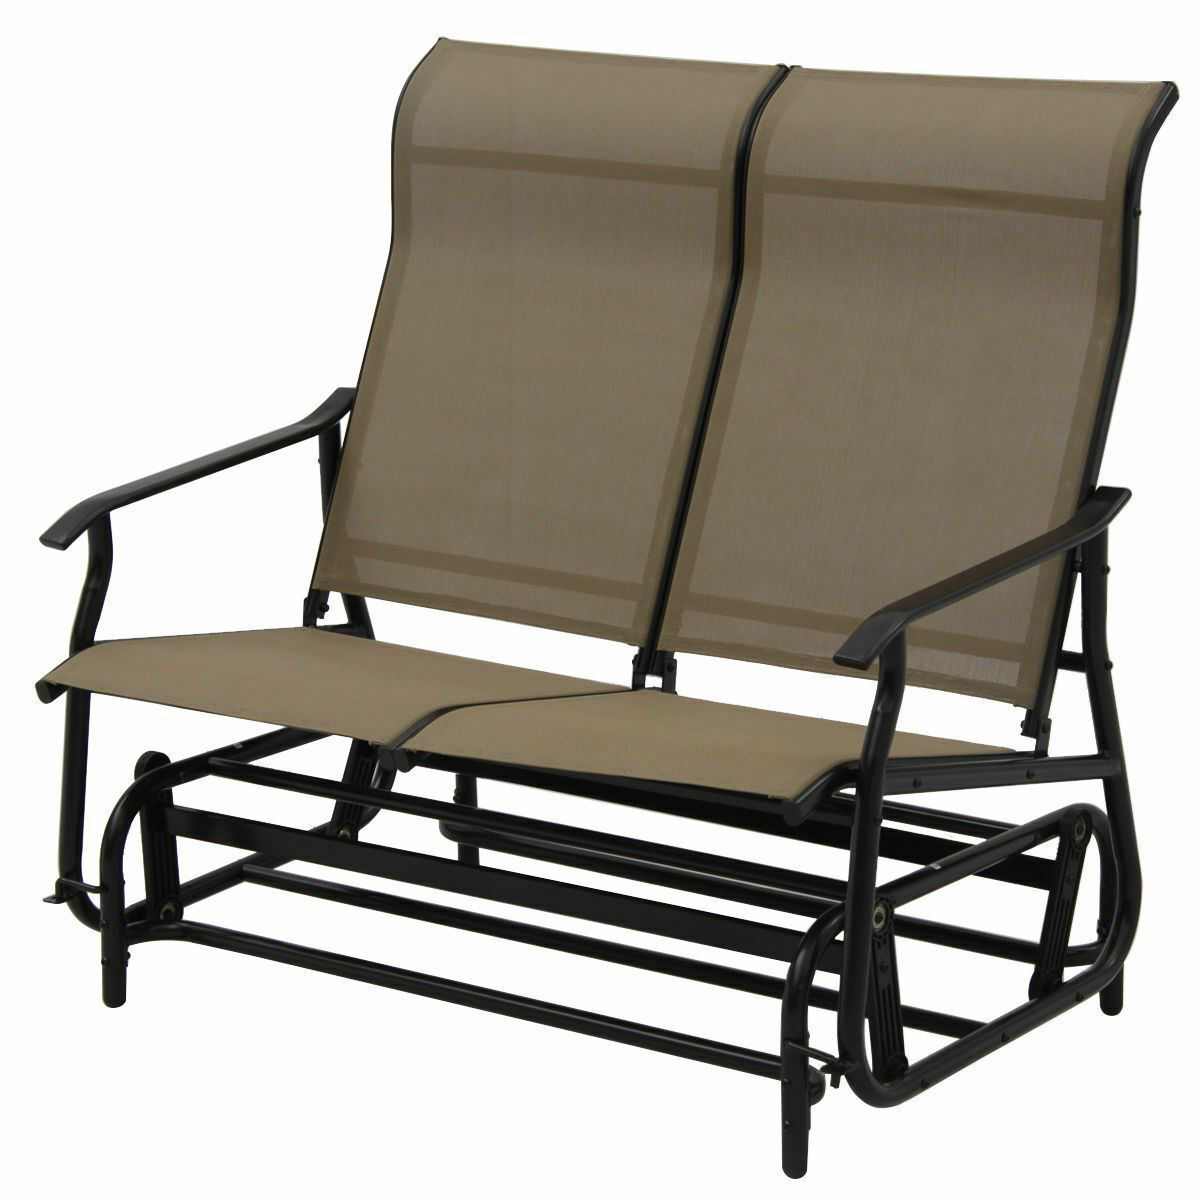 Picture of Outdoor 2-Person Rocking Glider Bench